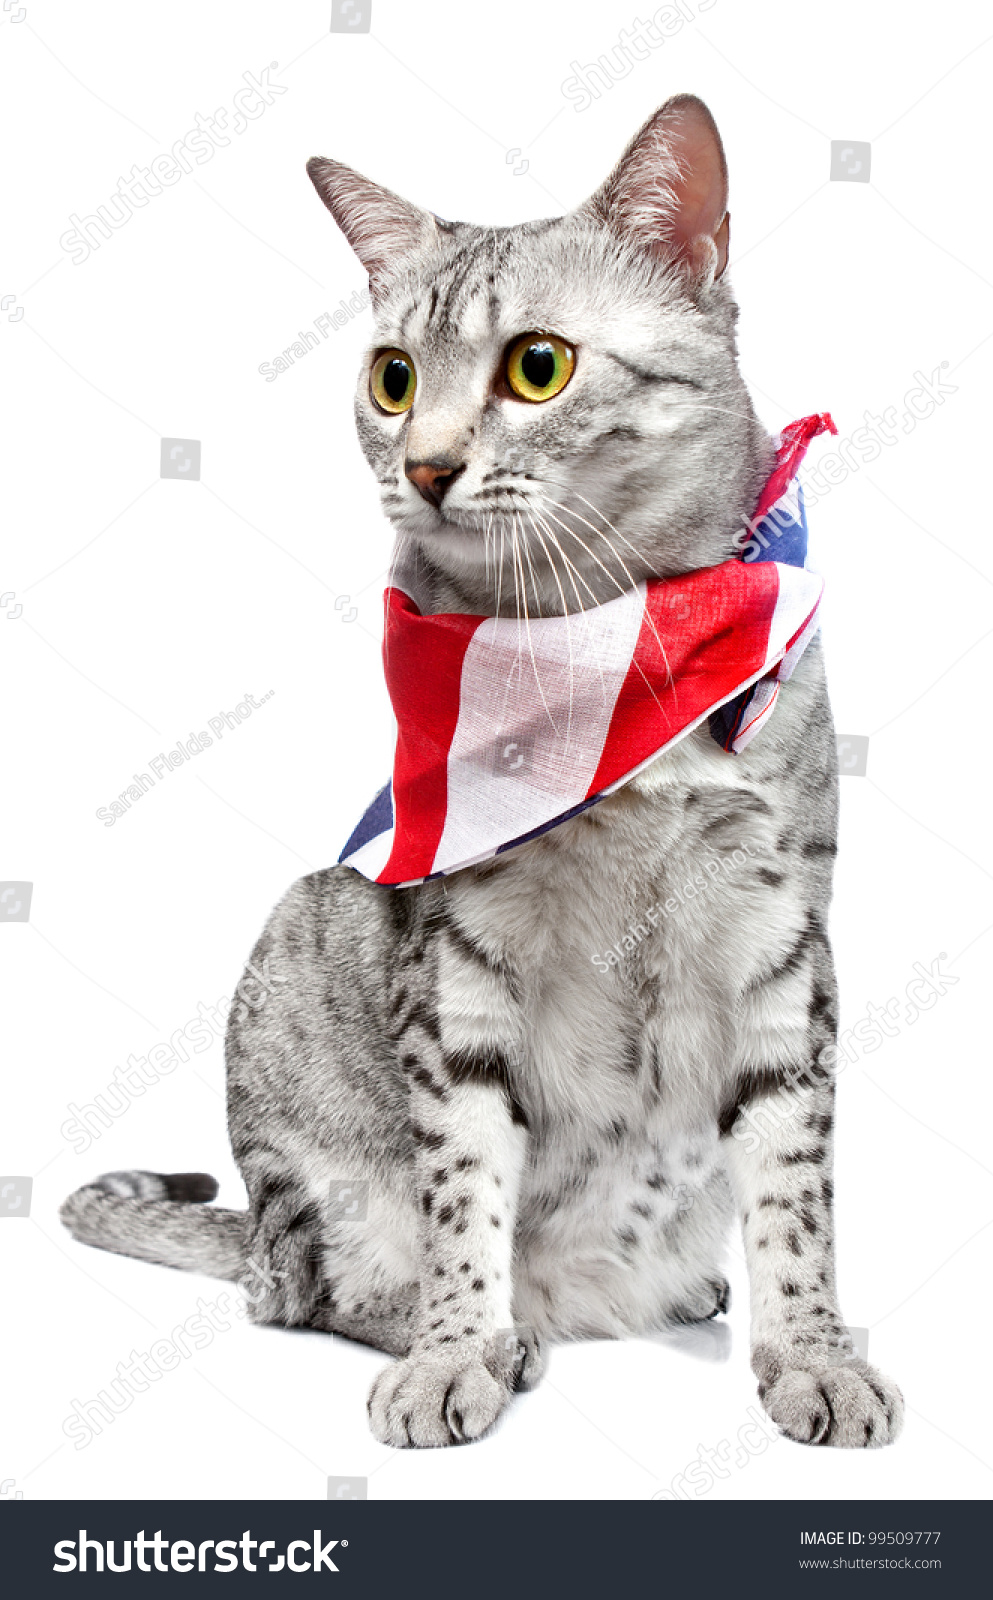 Cute Egyptian Mau Breed Cat Us Stock Photo 99509777 - Shutterstock